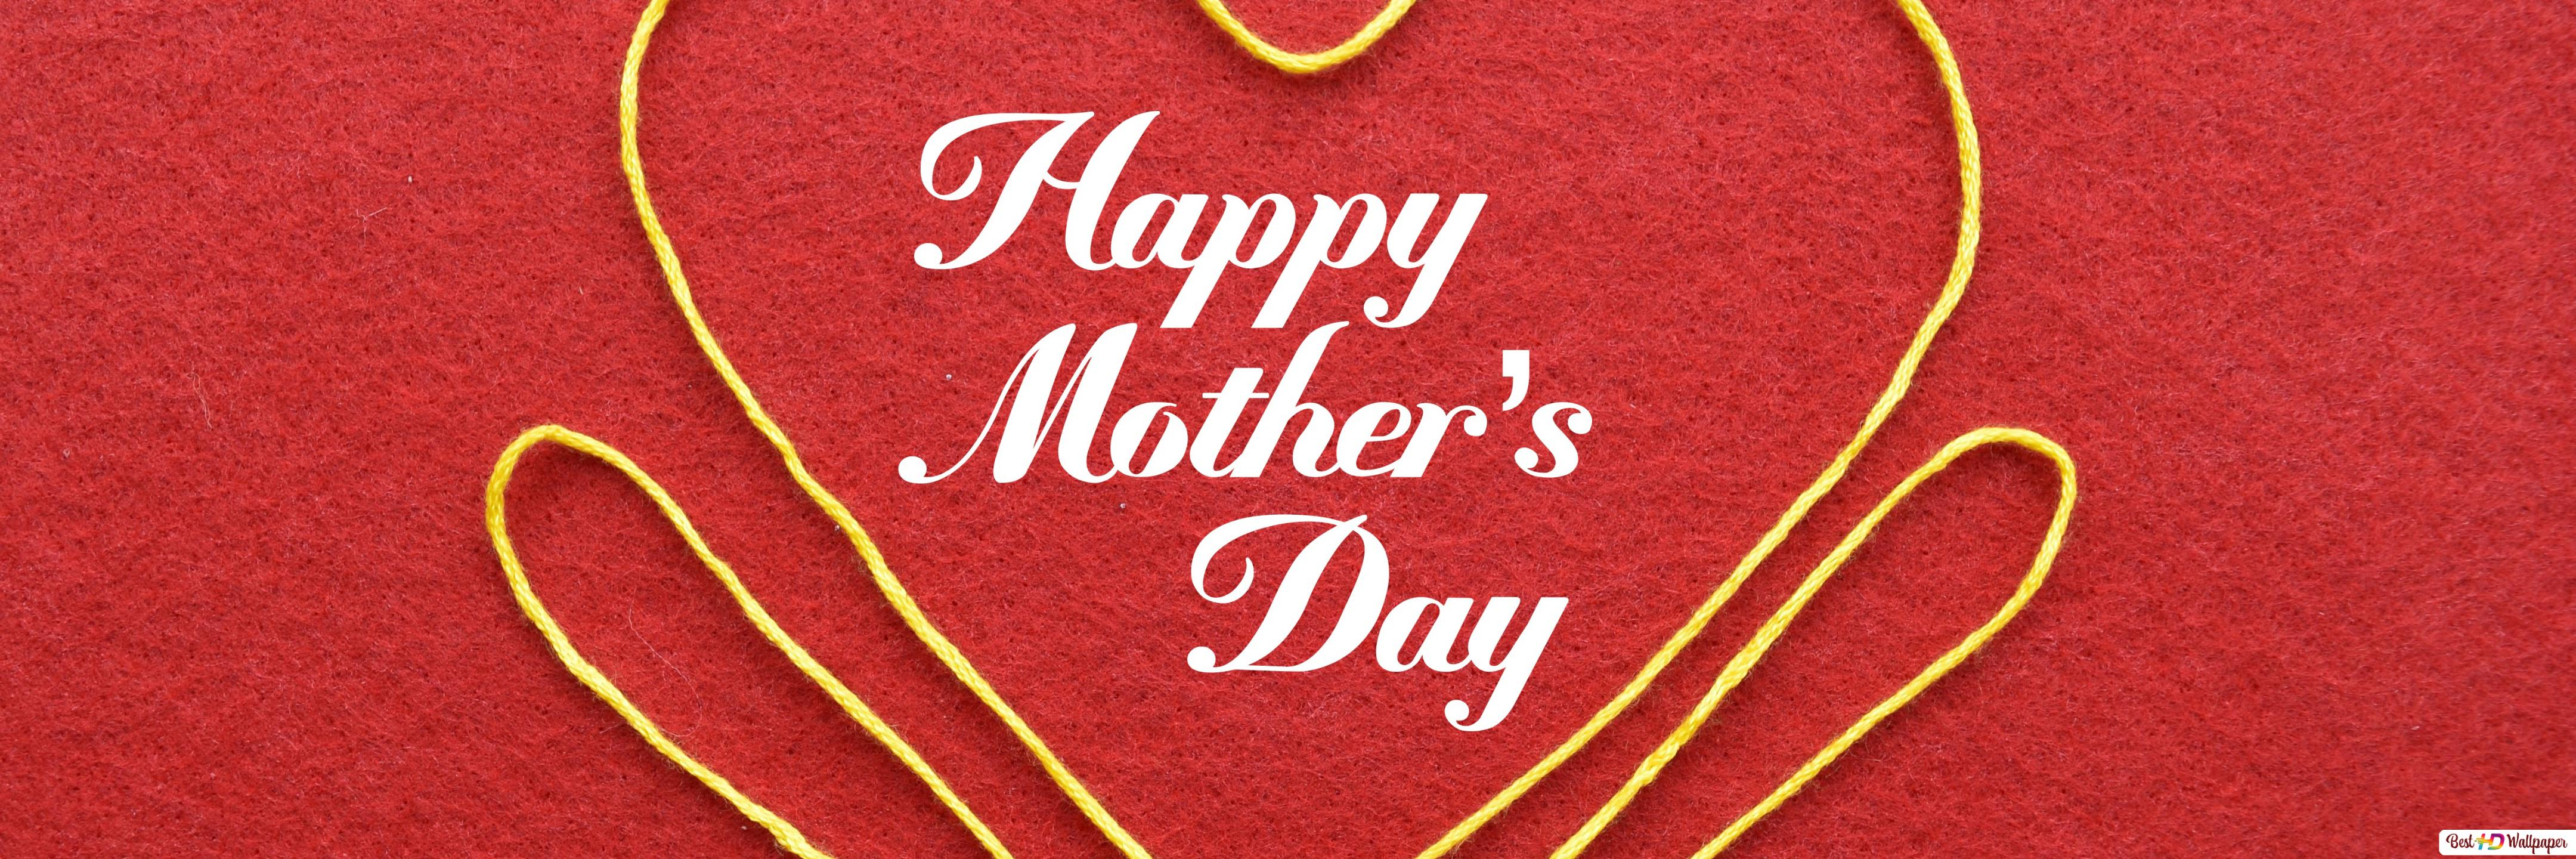 Happy Mother's Day greeting with yellow thread heart in red ...